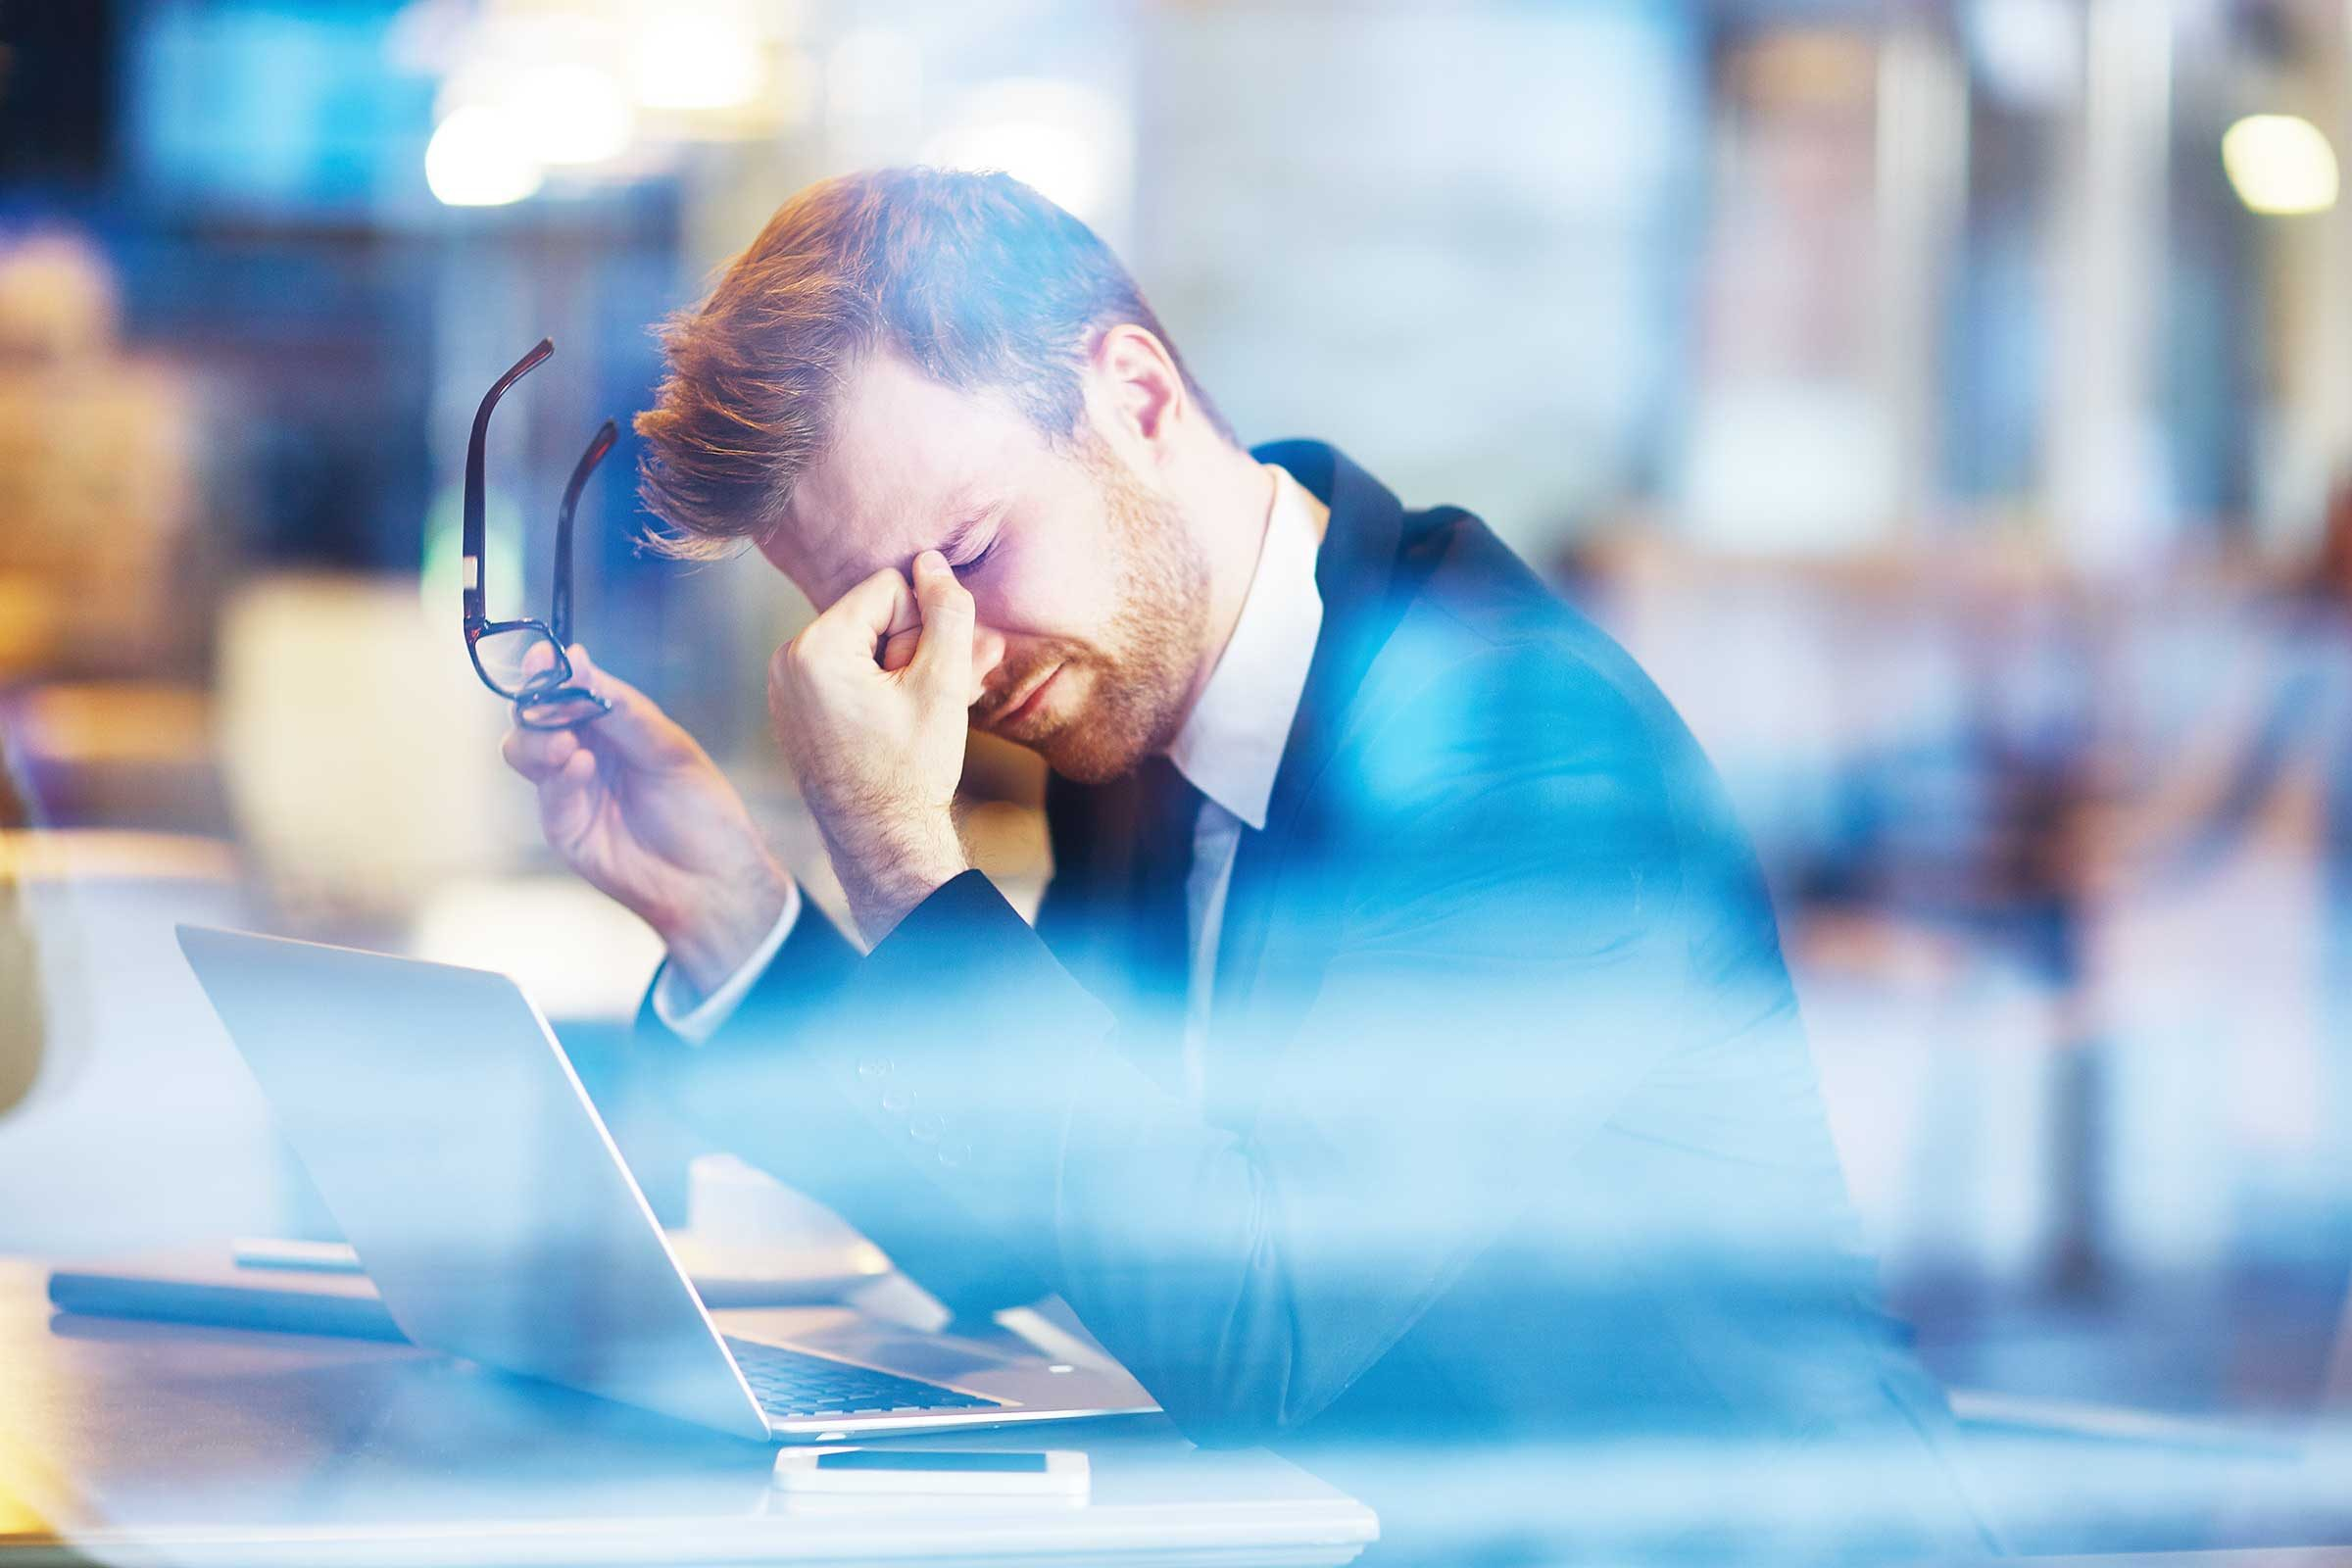 job stress a health and More strain at work might mean more illness in old age, according to a new study from finland the study found both physical and mental job strain were tied to hospital stays later in life.